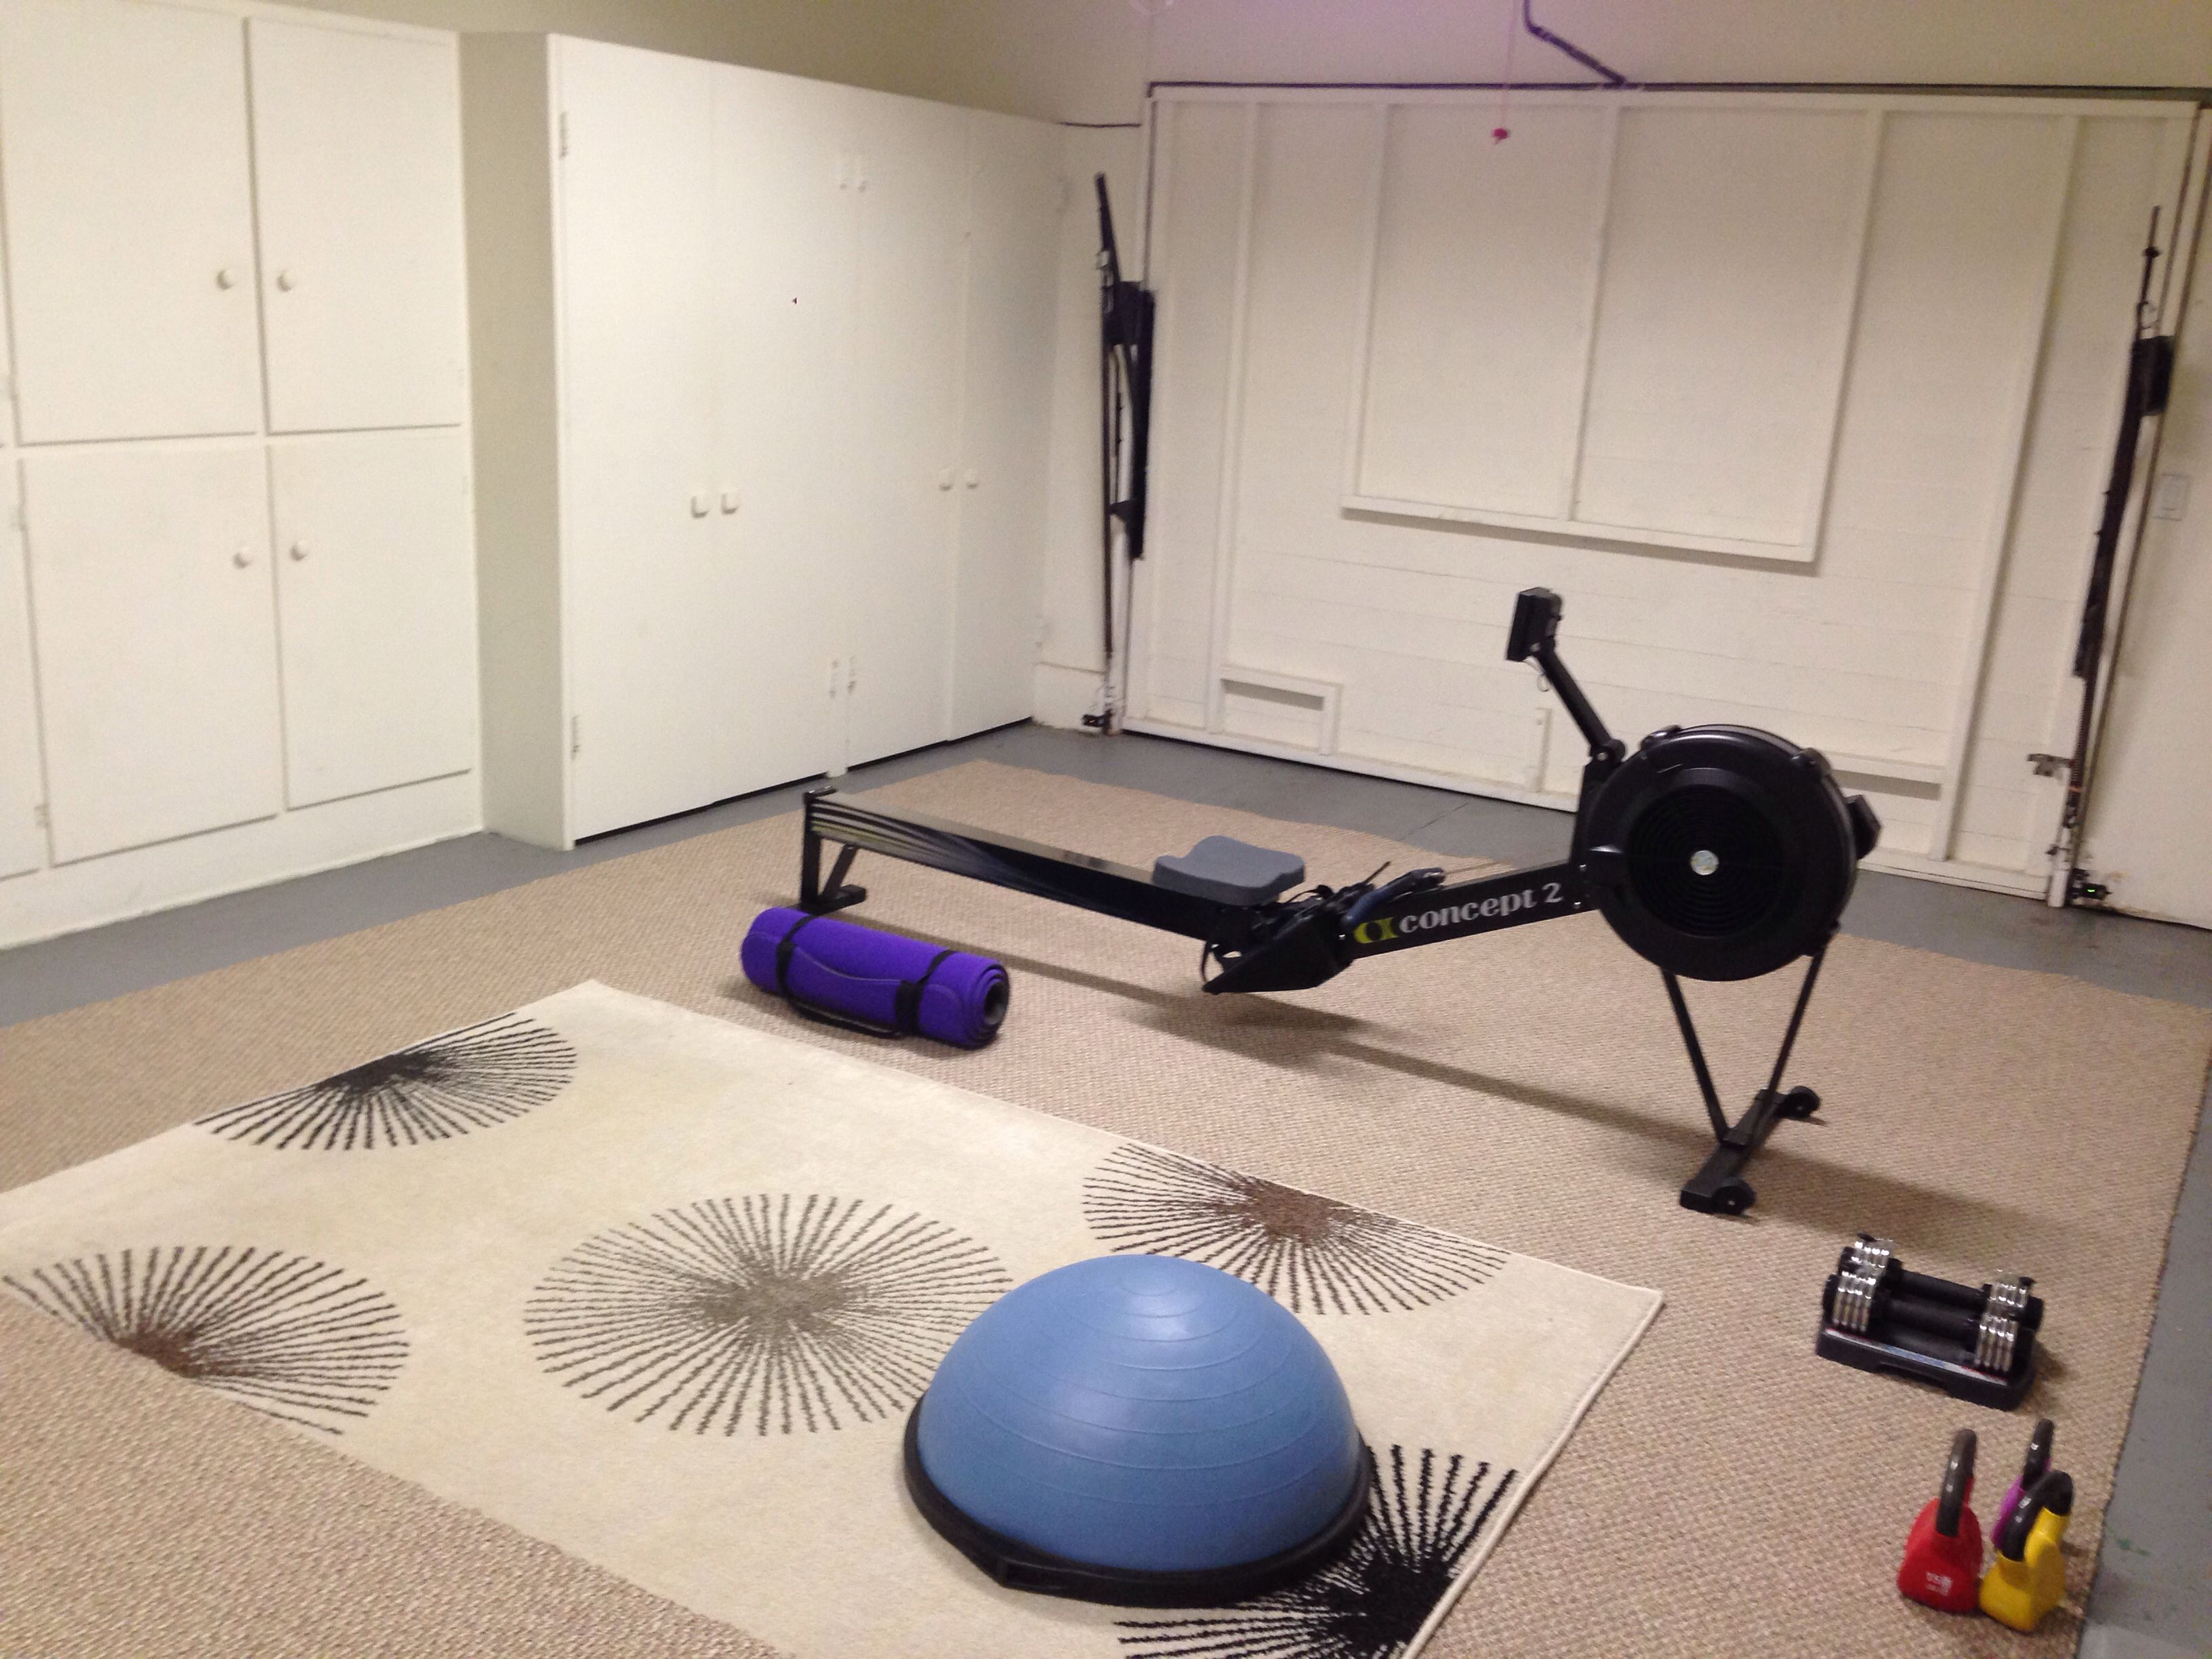 Garage turned into gym :-) Love our new concept 2 rower